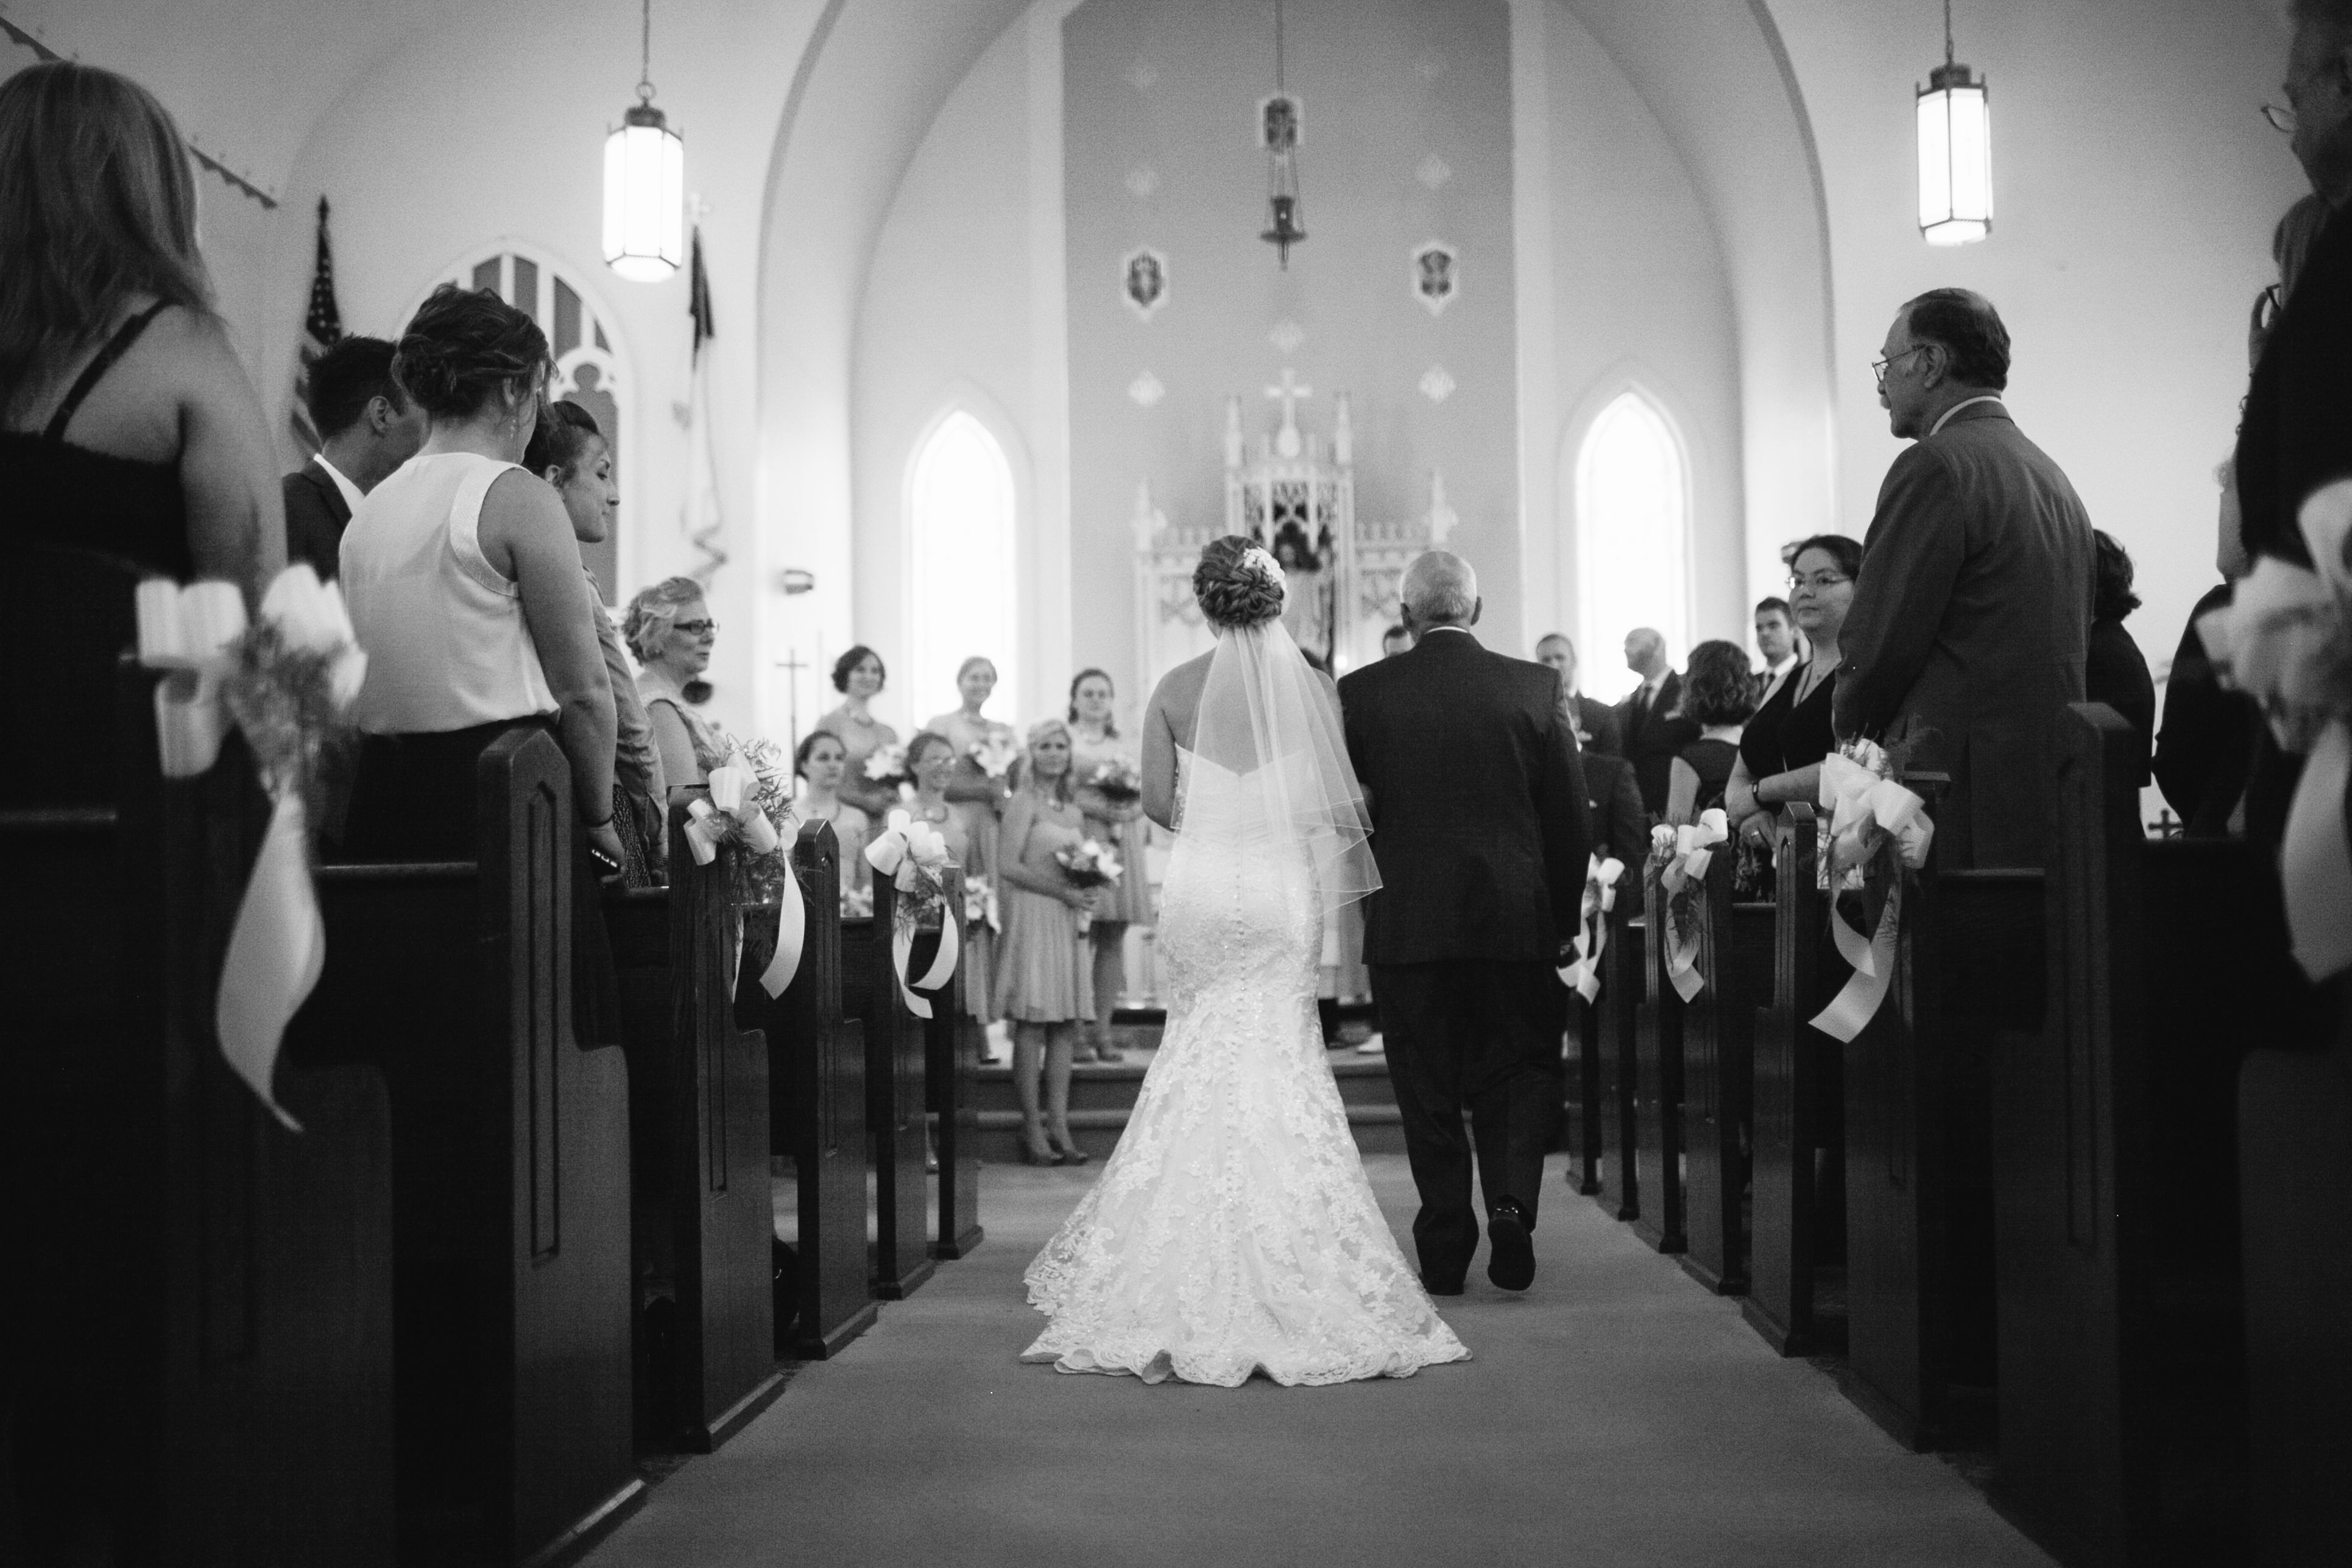 28+ Wedding venues south central wisconsin ideas in 2021